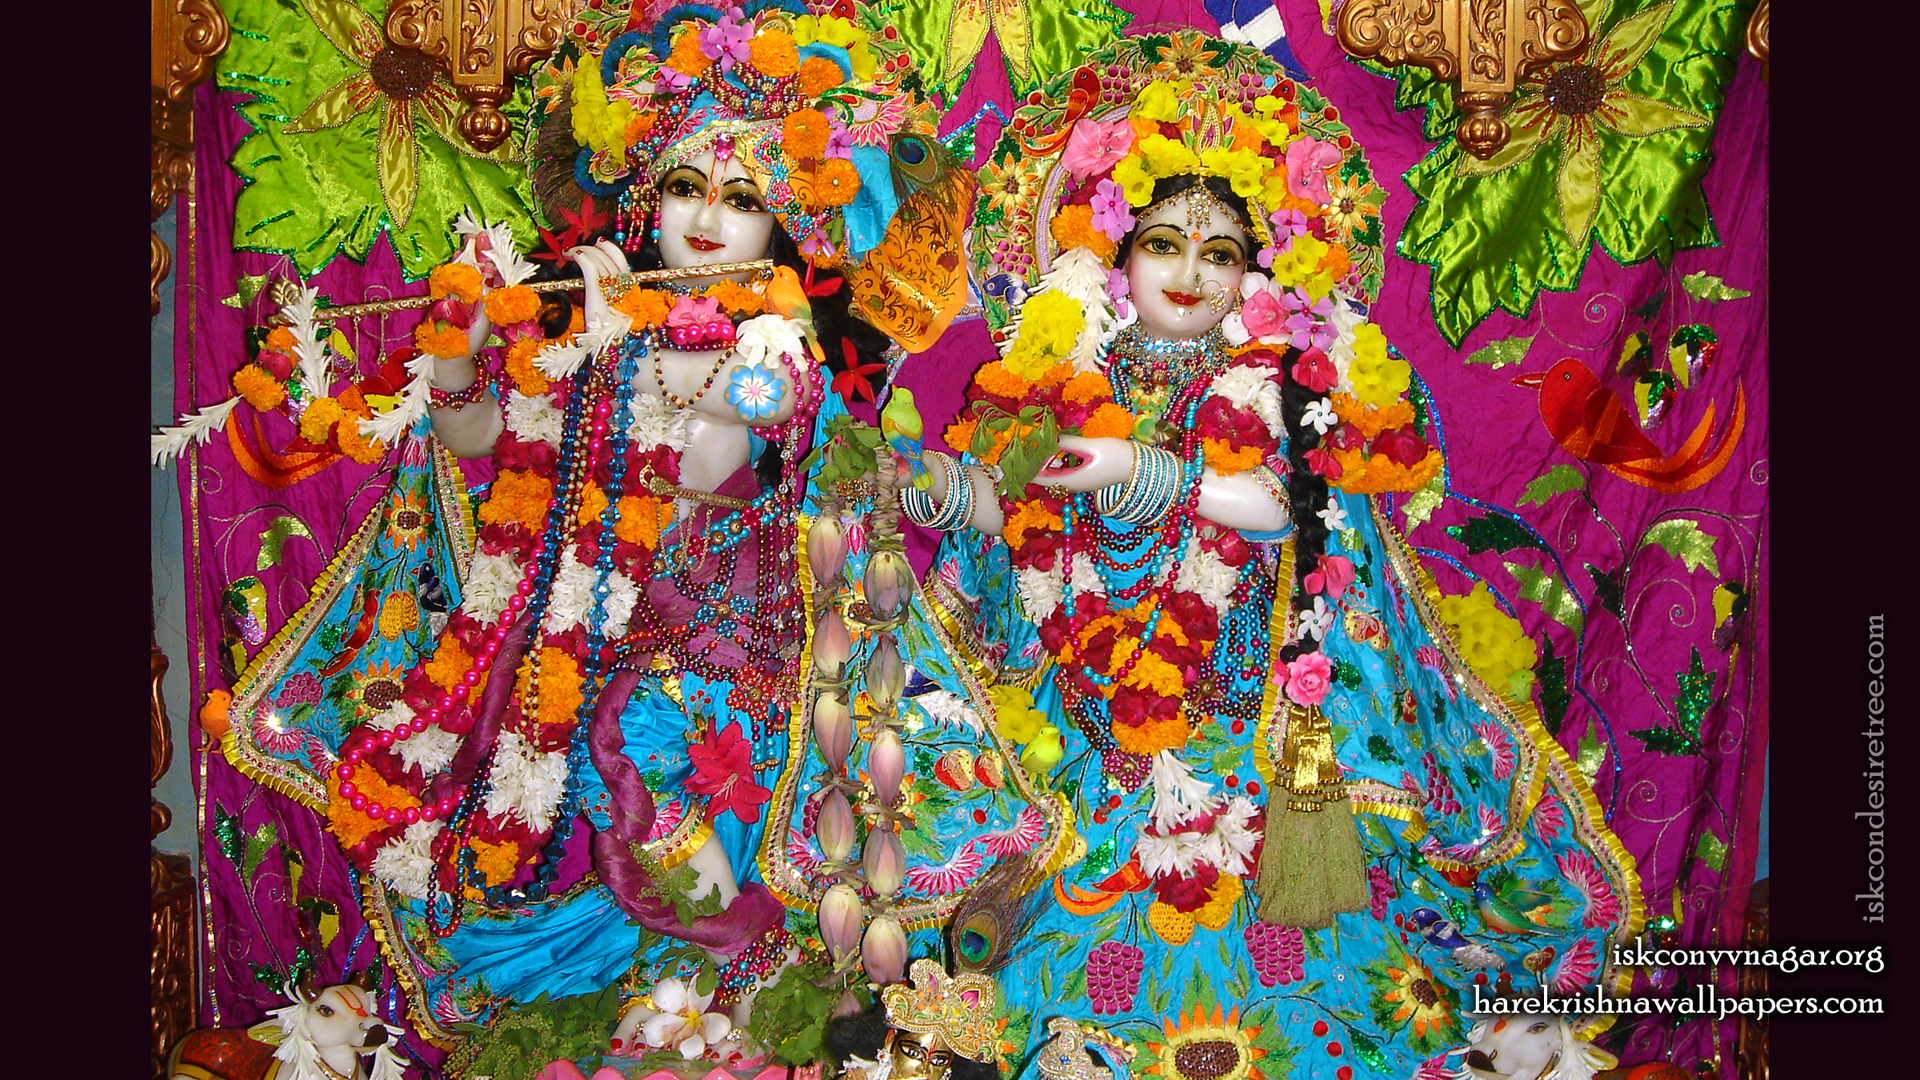 Sri Sri Radha Giridhari Wallpaper (015) Size 1920x1080 Download